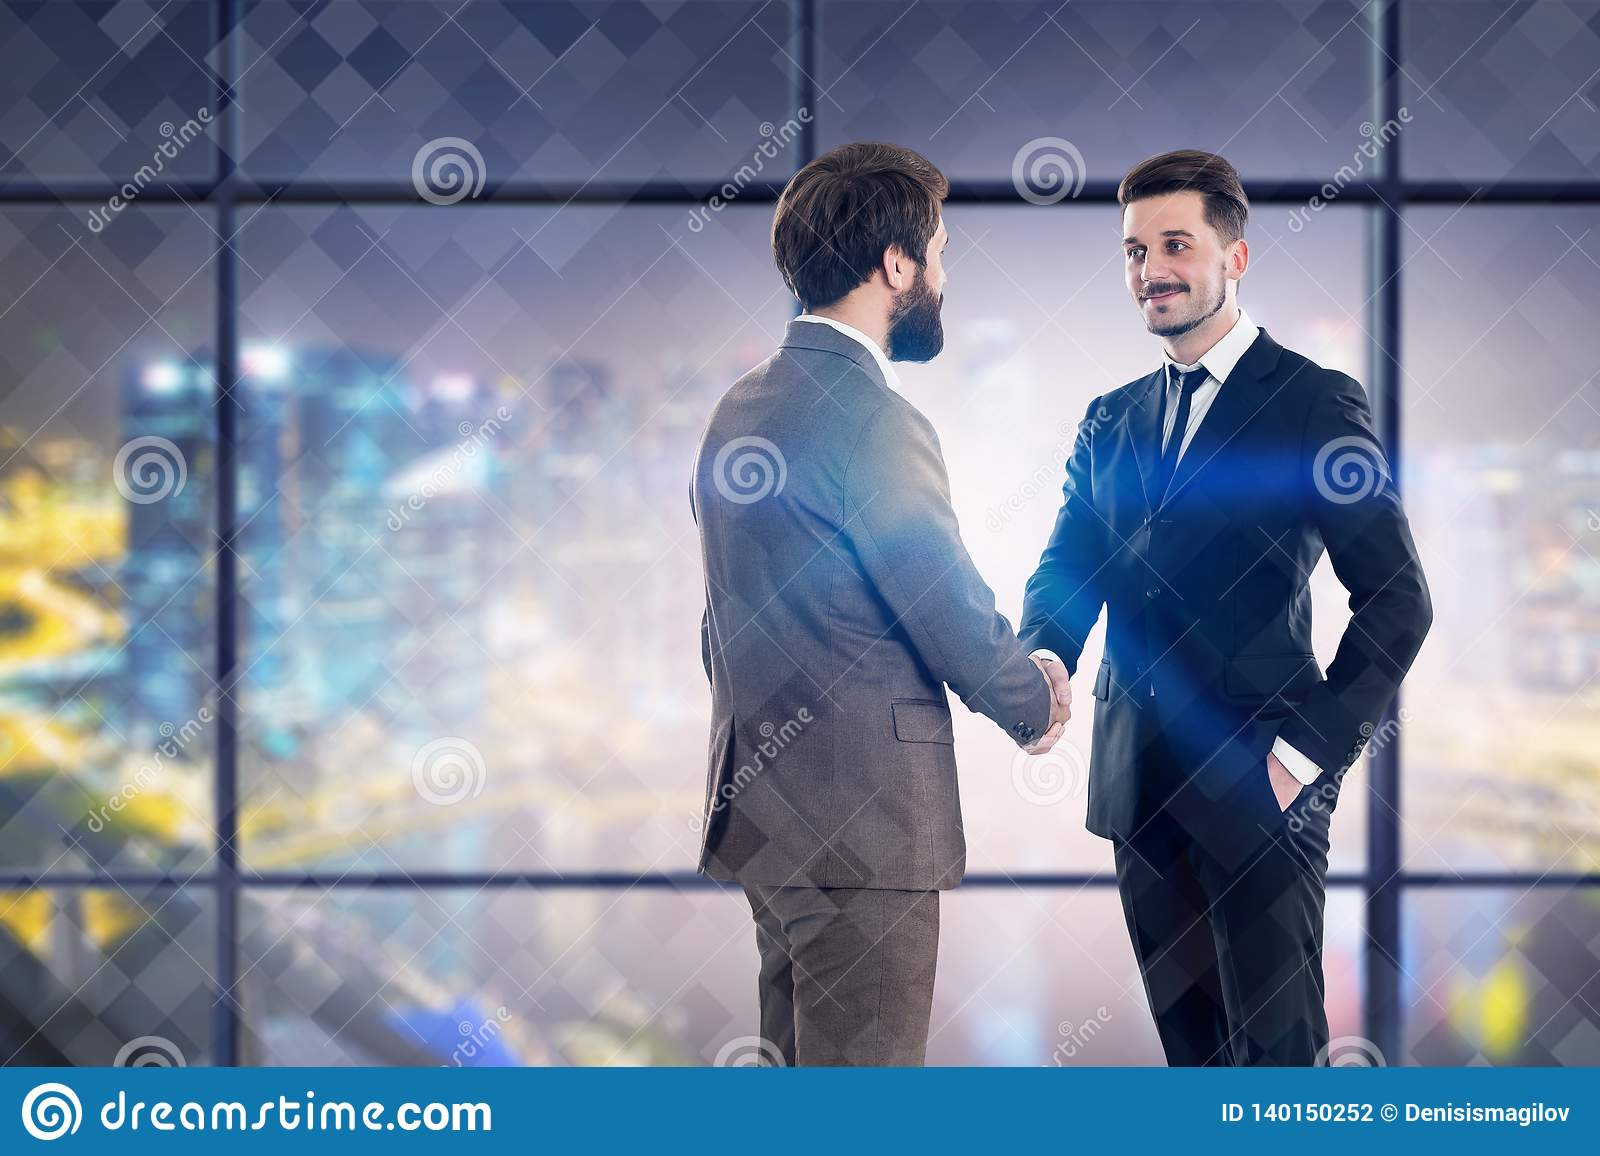 Two businessmen shaking hands in night office